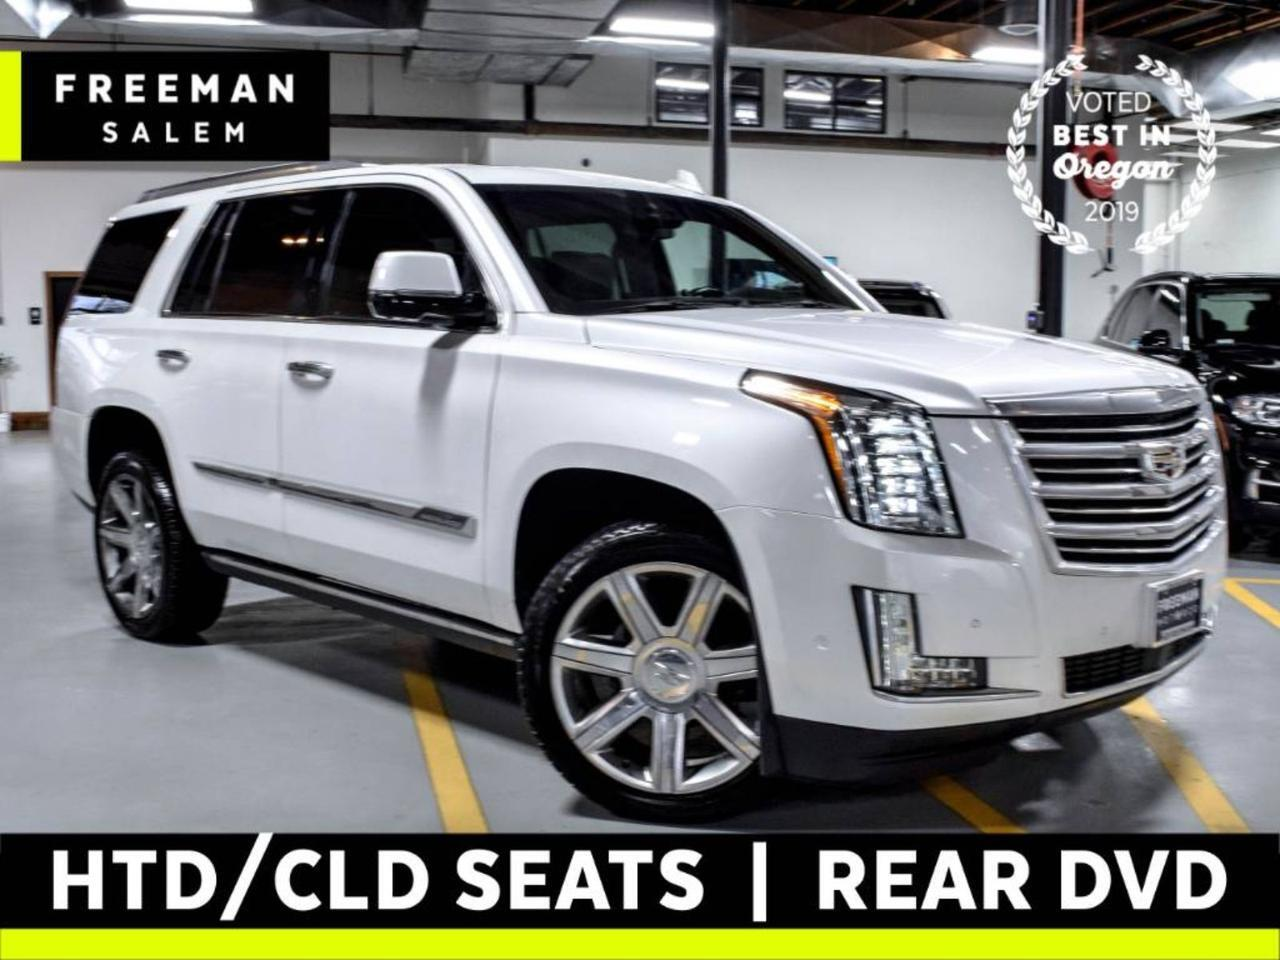 2017 Cadillac Escalade Platinum Just 23K Miles Rear DVD Htd/Cooled Seats